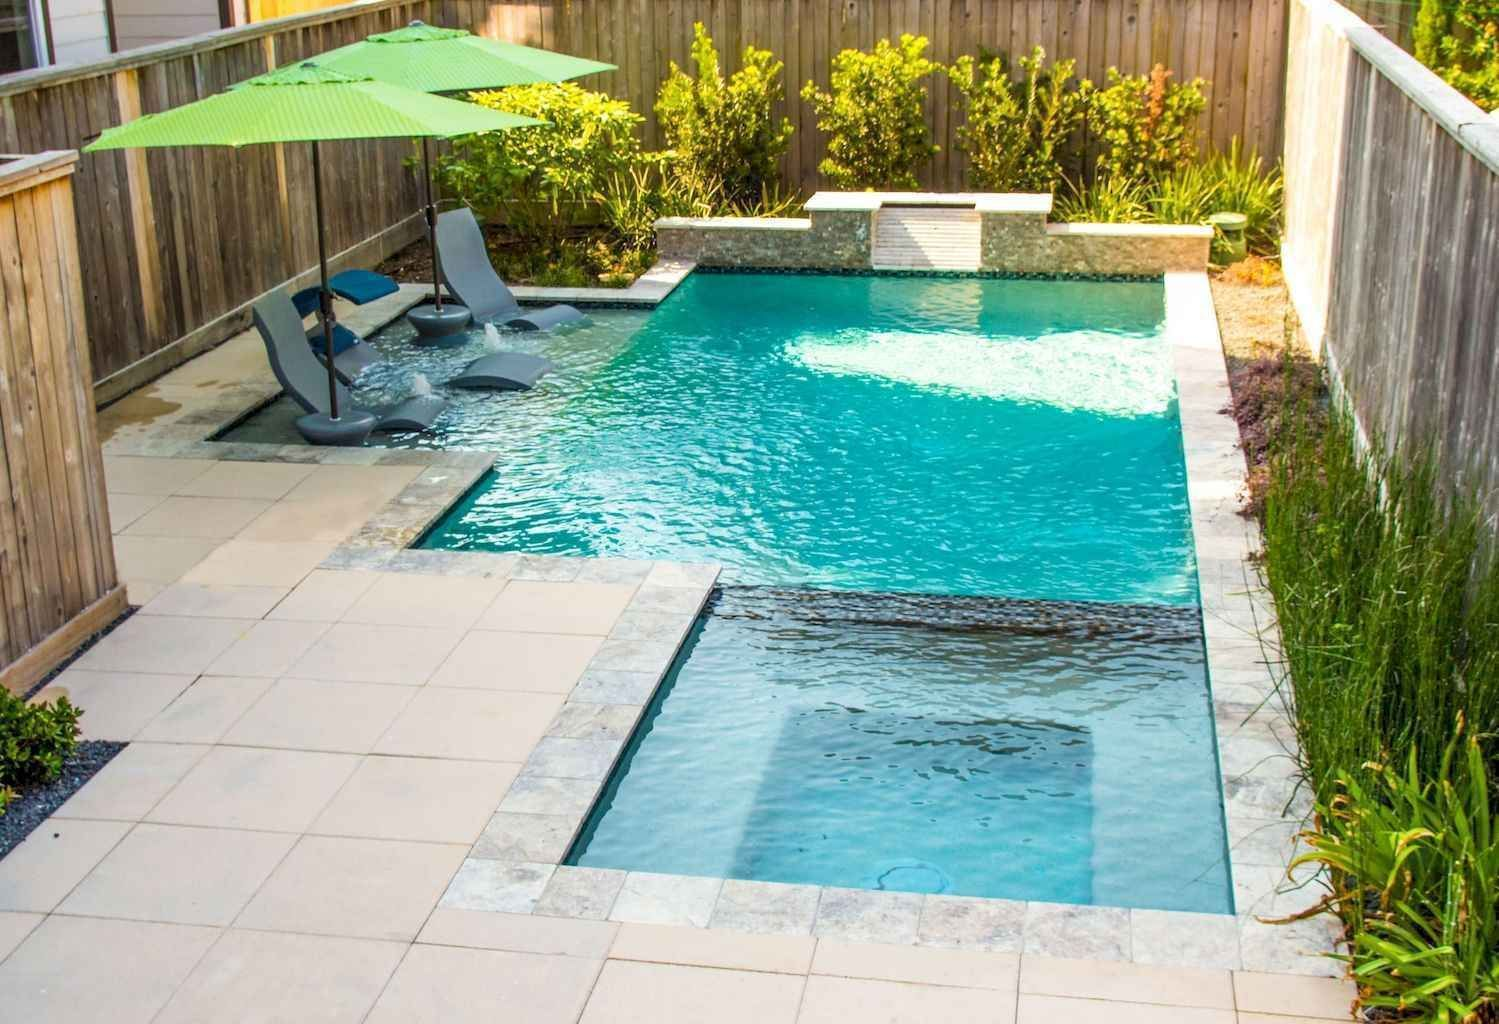 21 Best Swimming Pool Designs Beautiful Cool And Modern Small Backyard Pools Small Pool Design Backyard Pool Designs